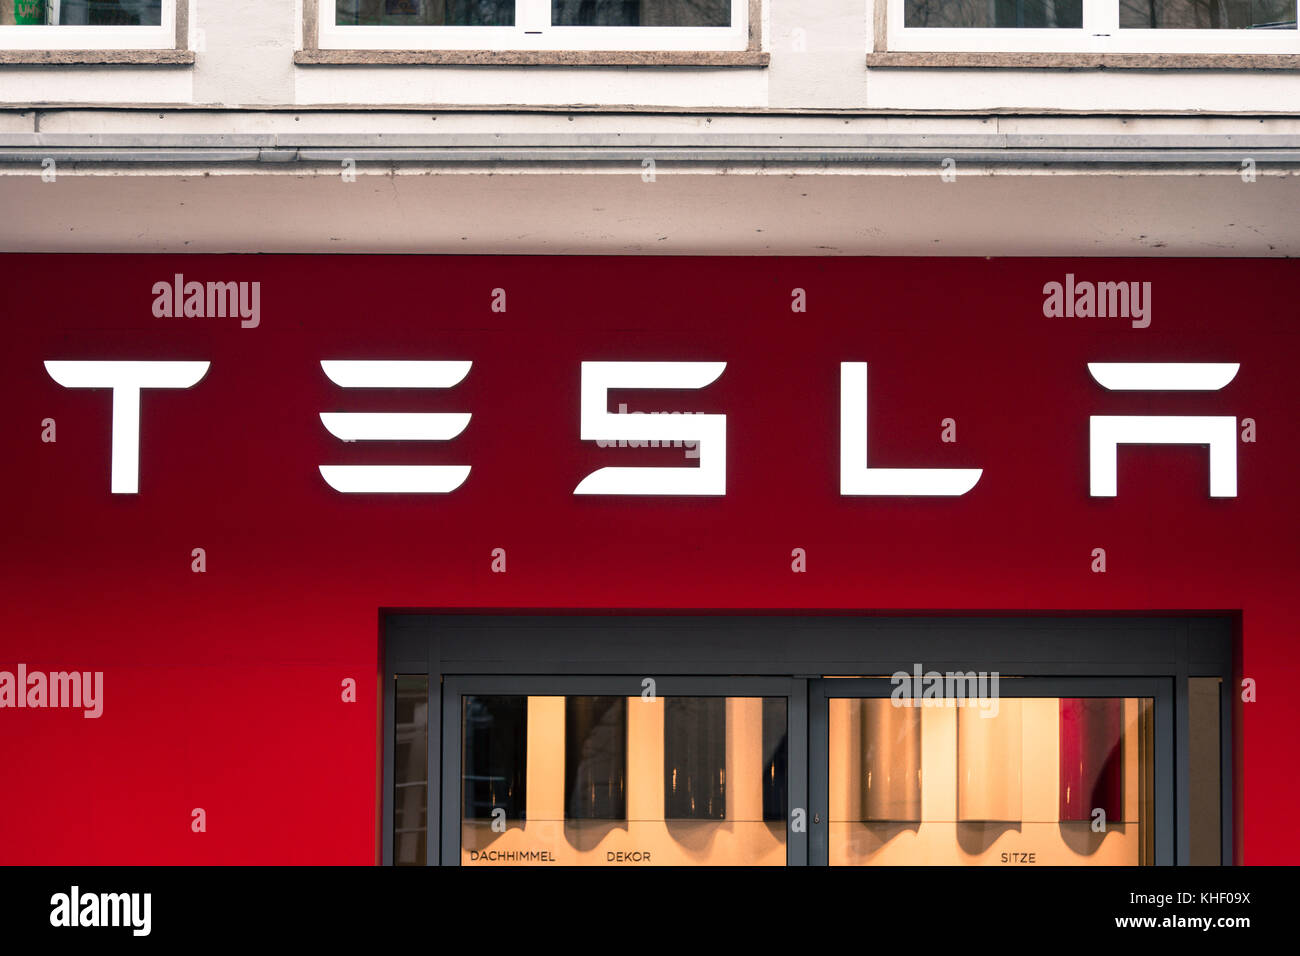 Solarcity stock photos solarcity stock images alamy munich bavaria germany 16th nov 2017 the sign of a tesla buycottarizona